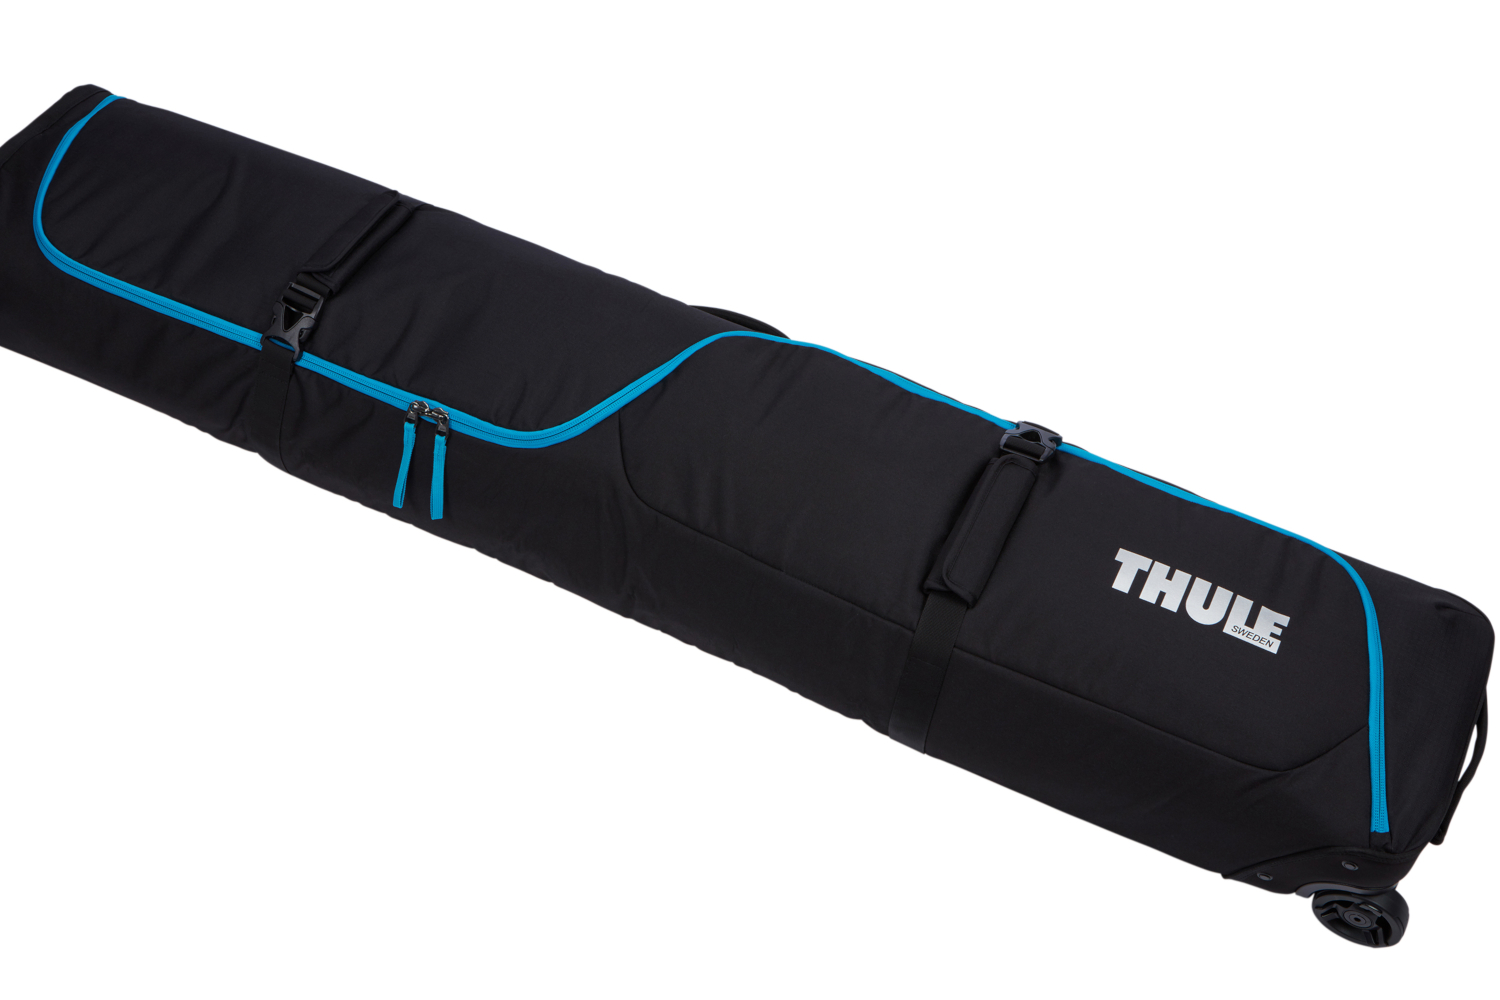 Thule RoundTrip Ski Roller Bag showing wheels and straps